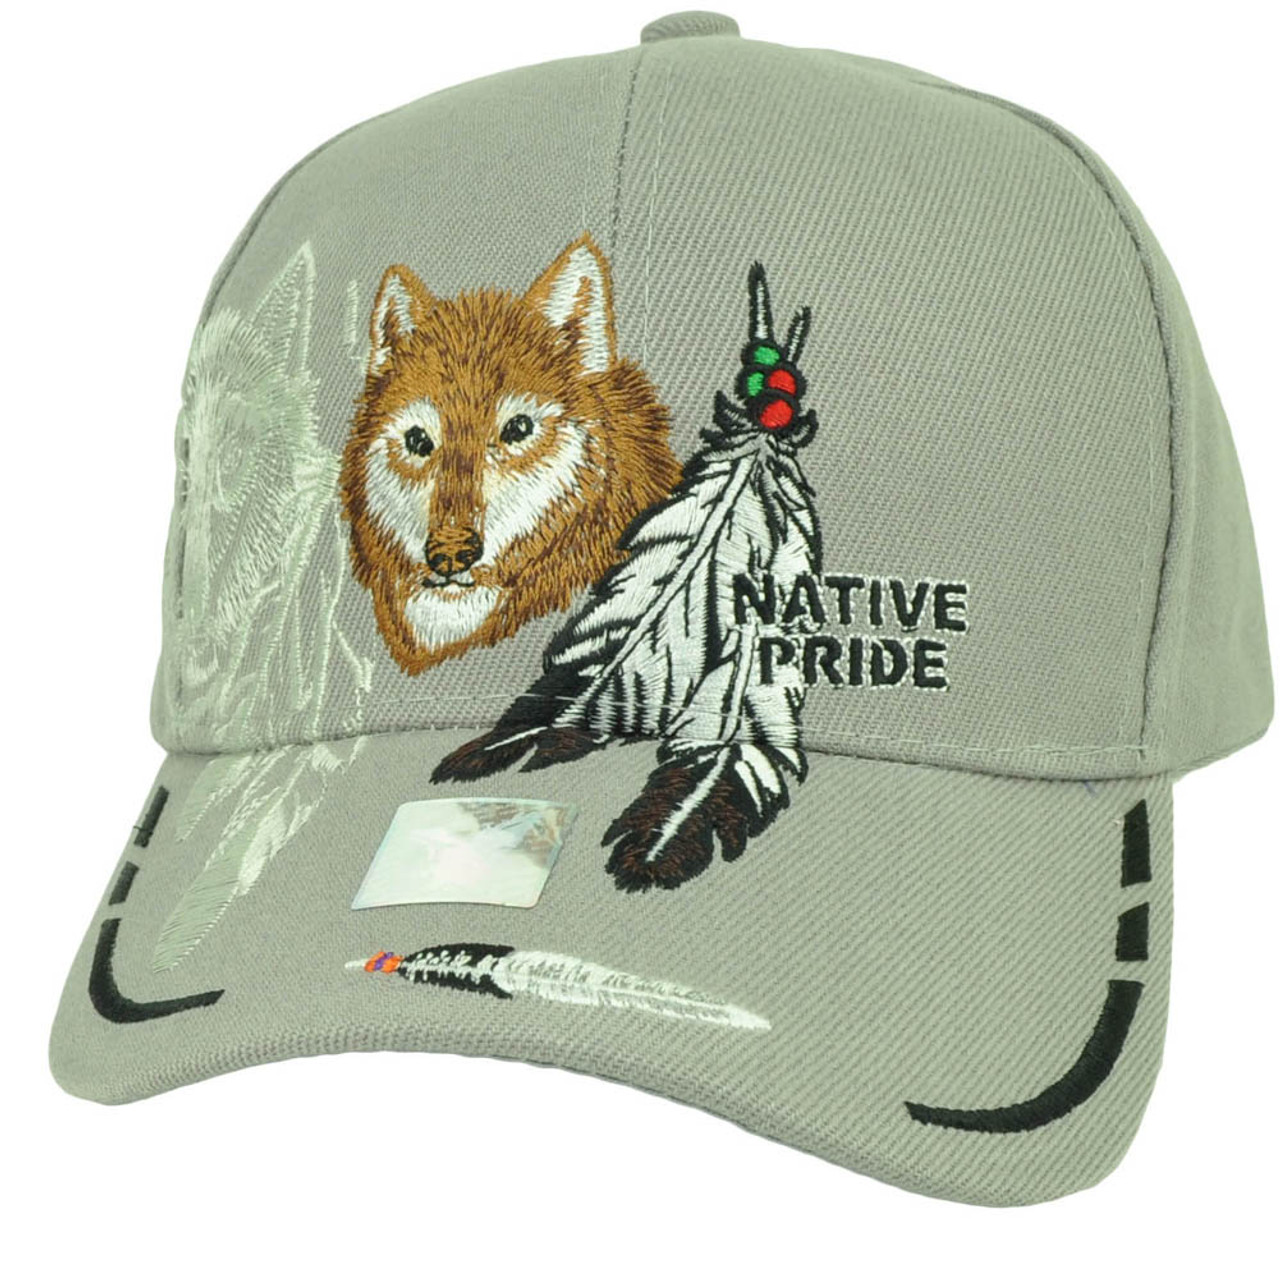 Native Indian American Pride Lone Wolf Pink Feather Animal Hat Cap Curved Bill